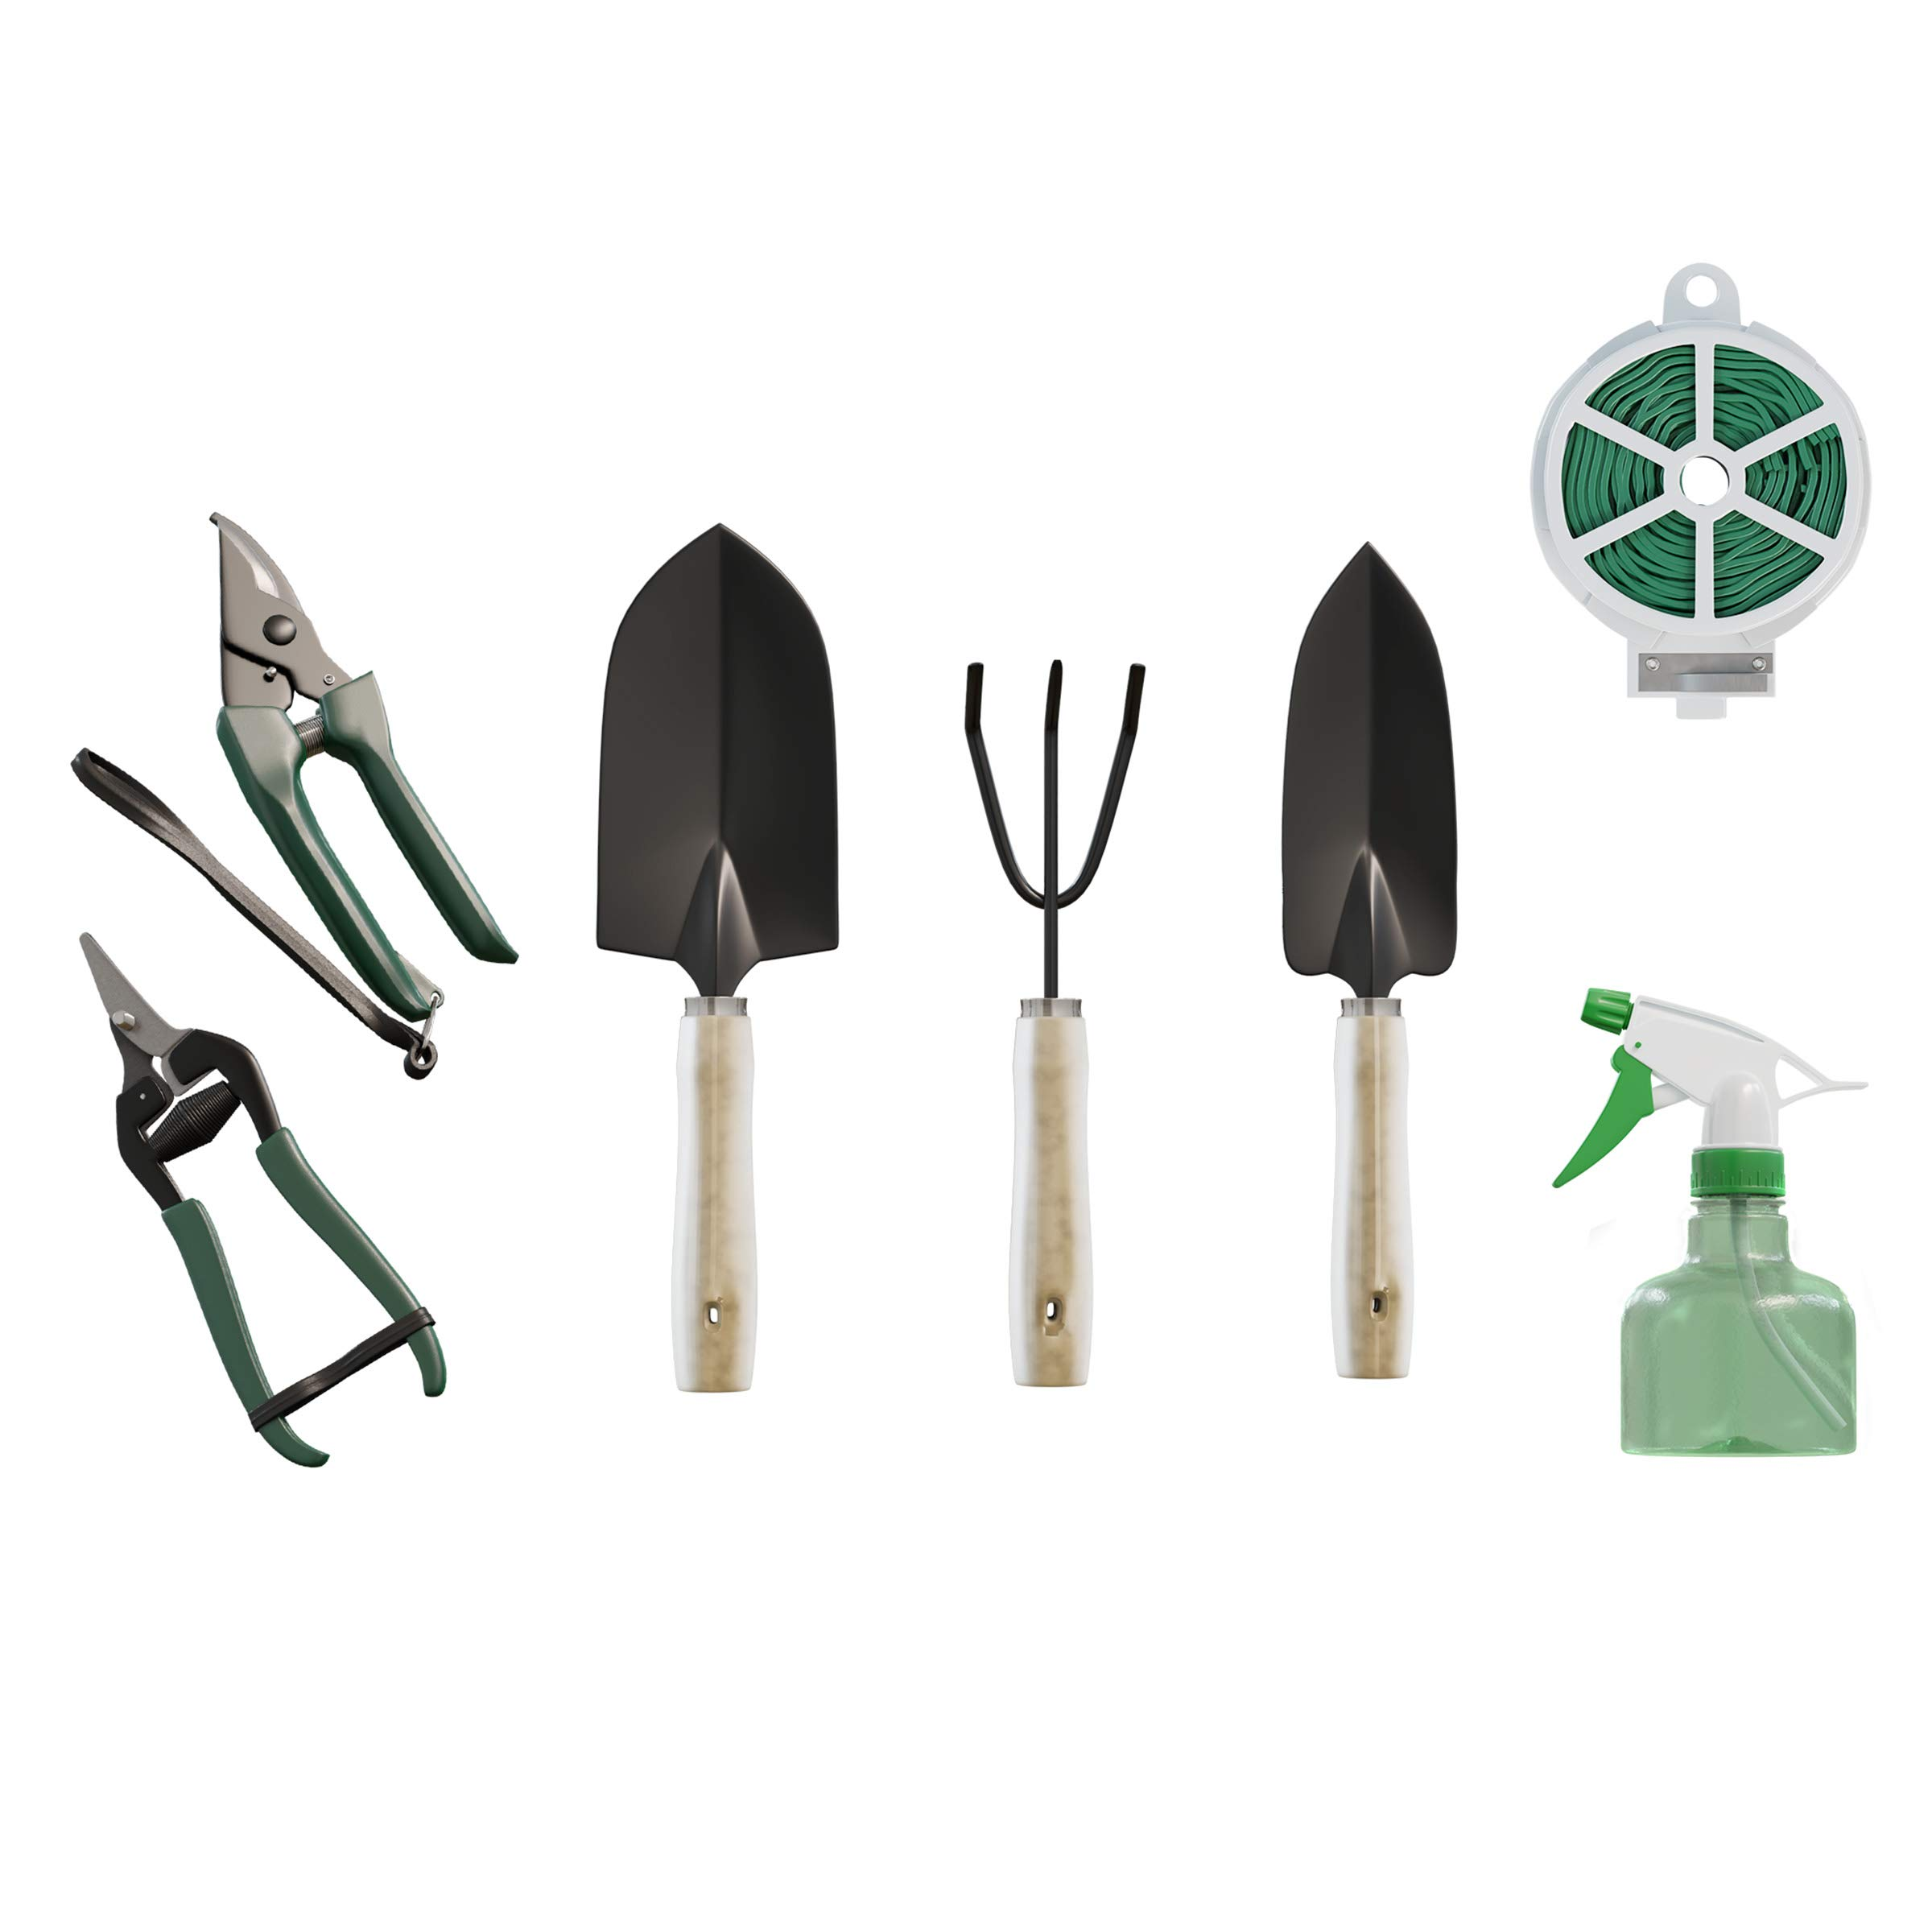 Pure Garden 8 Piece Garden Tote and Tool Set- Gardening Hand Tools and Supply Essentials Kit Includes Storage Bag, Rake, Shovel, Trowel, More by Pure Garden (Image #2)